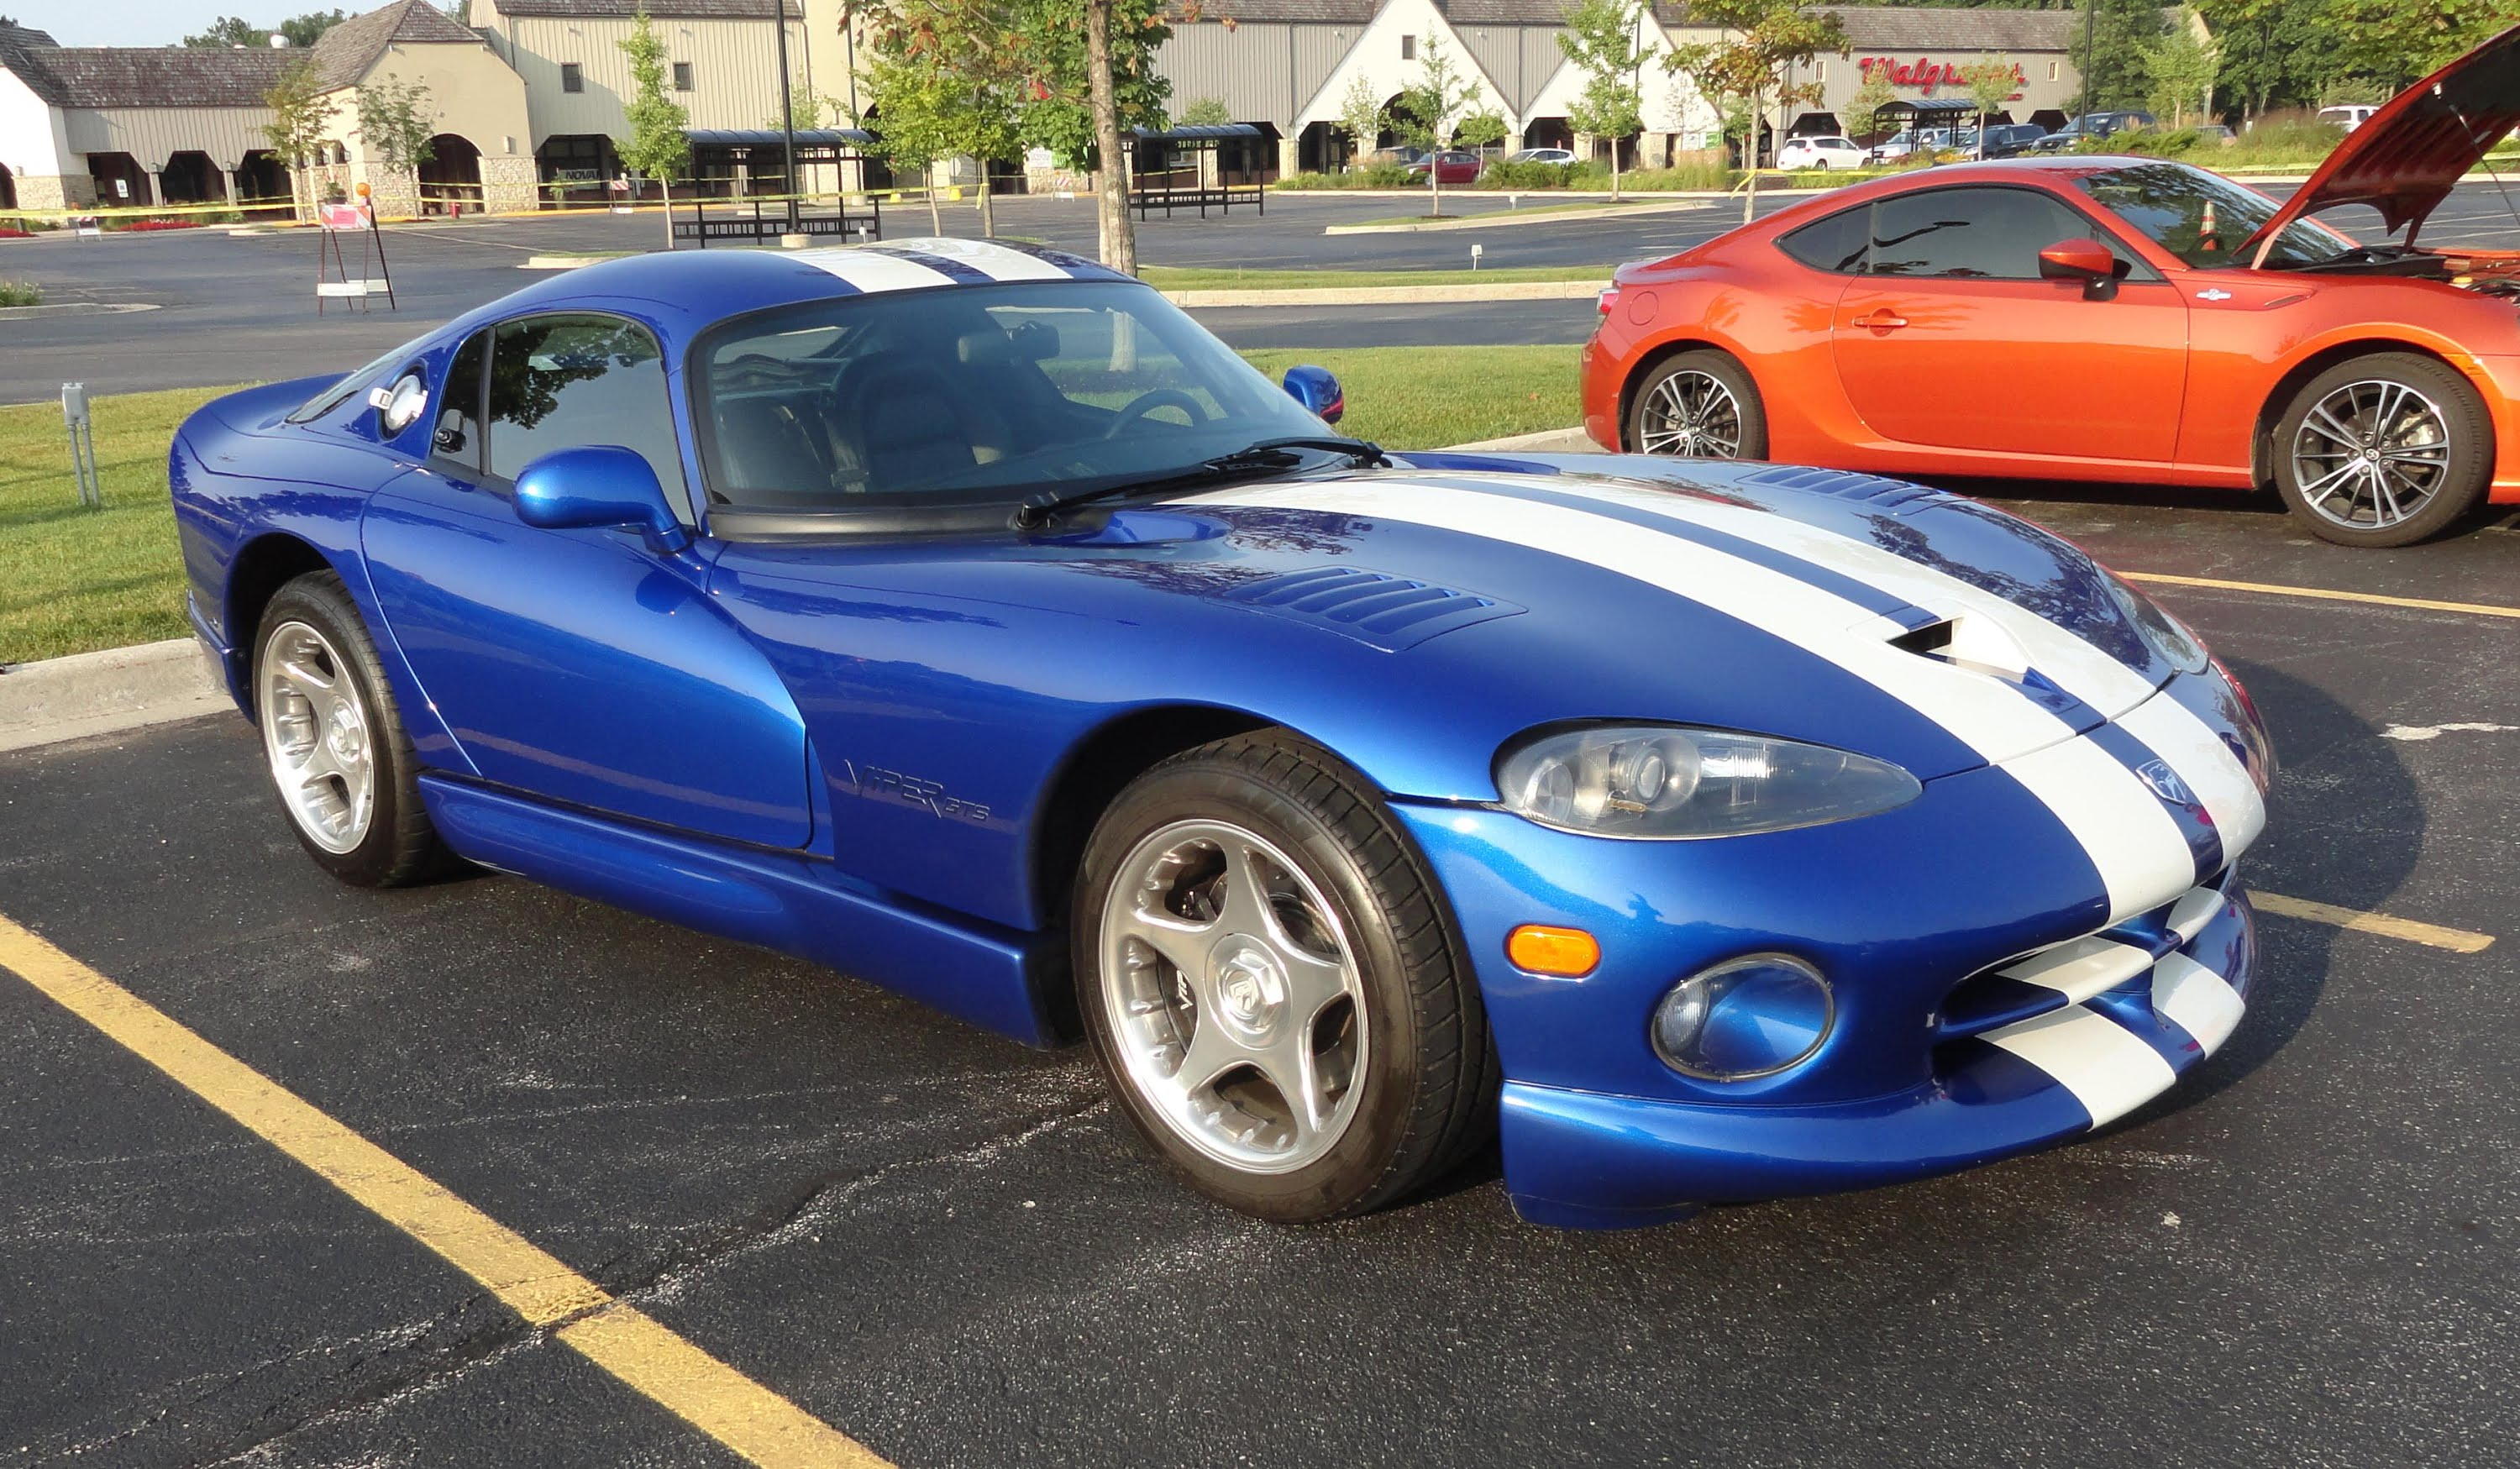 1996 Dodge Viper GTS Backgrounds